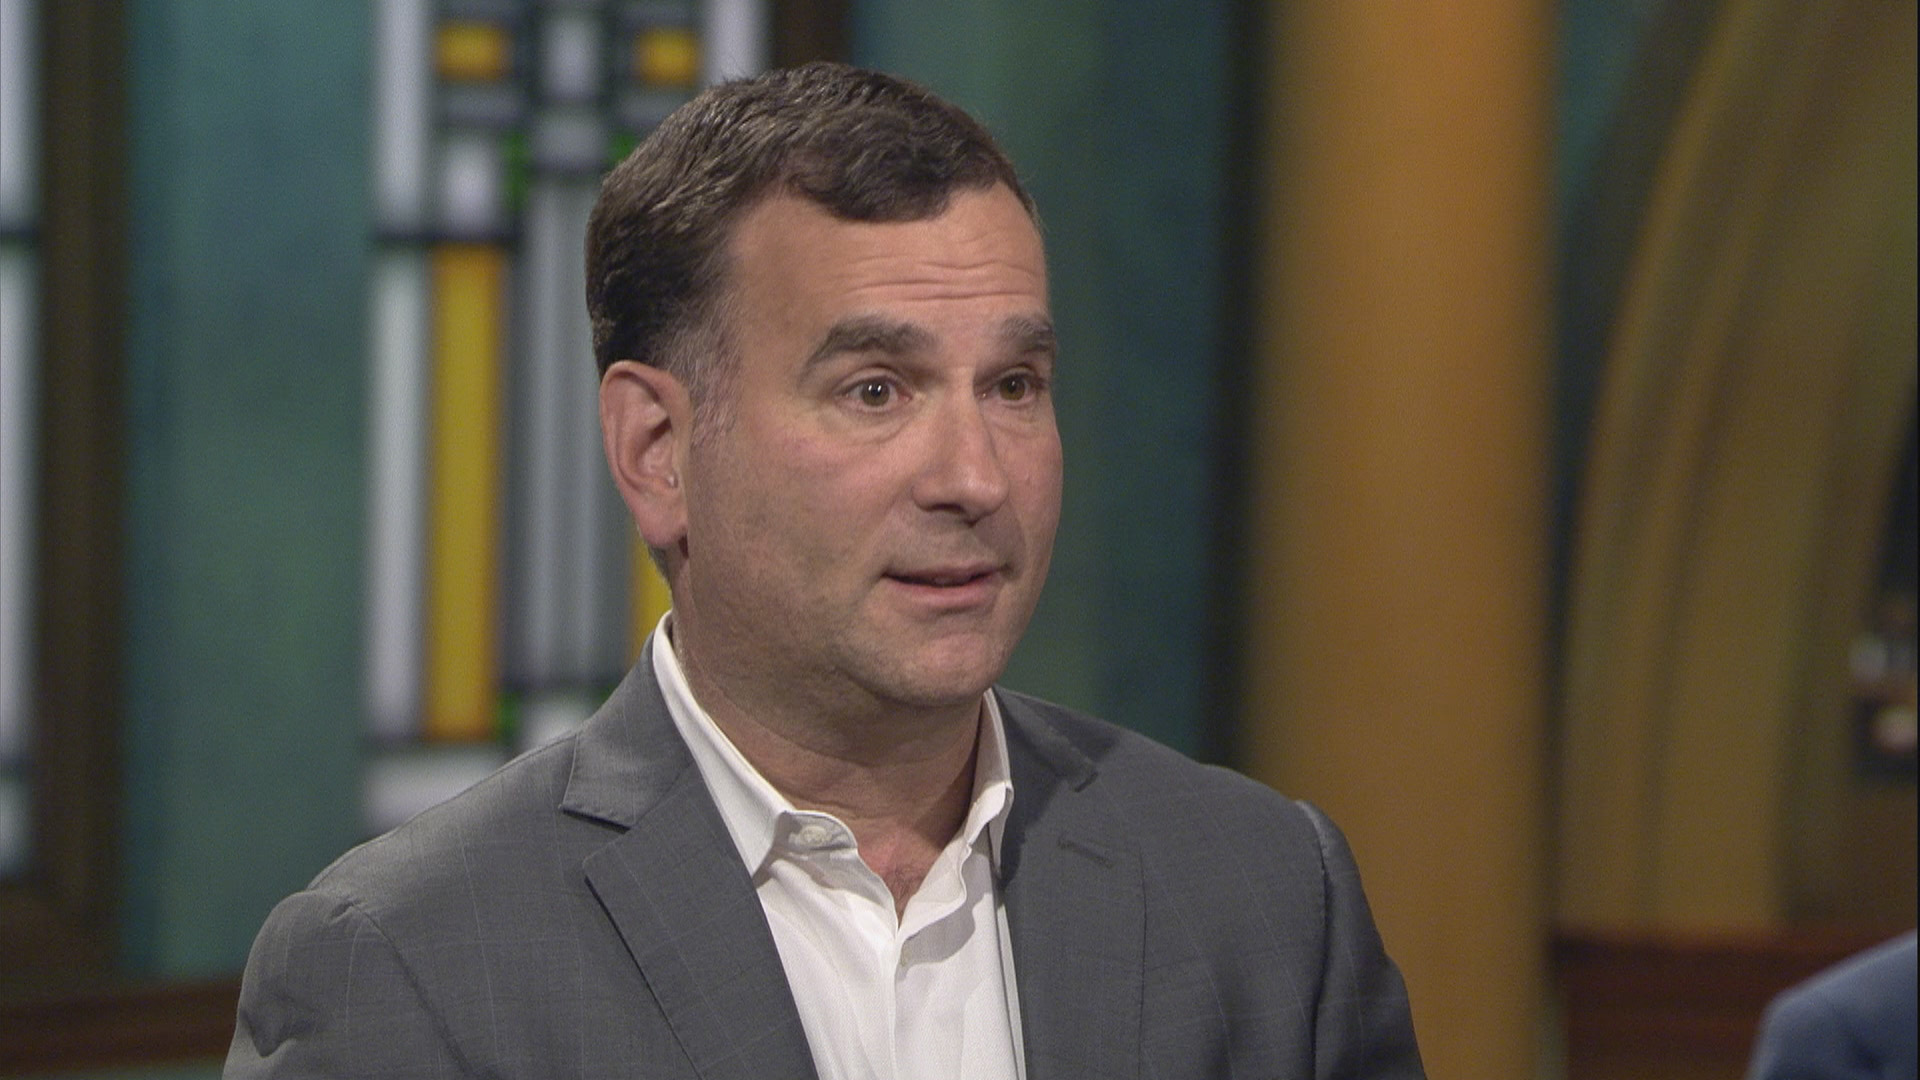 Chicago White Sox GM Wants Team That Can Win 'On an Annual Basis'